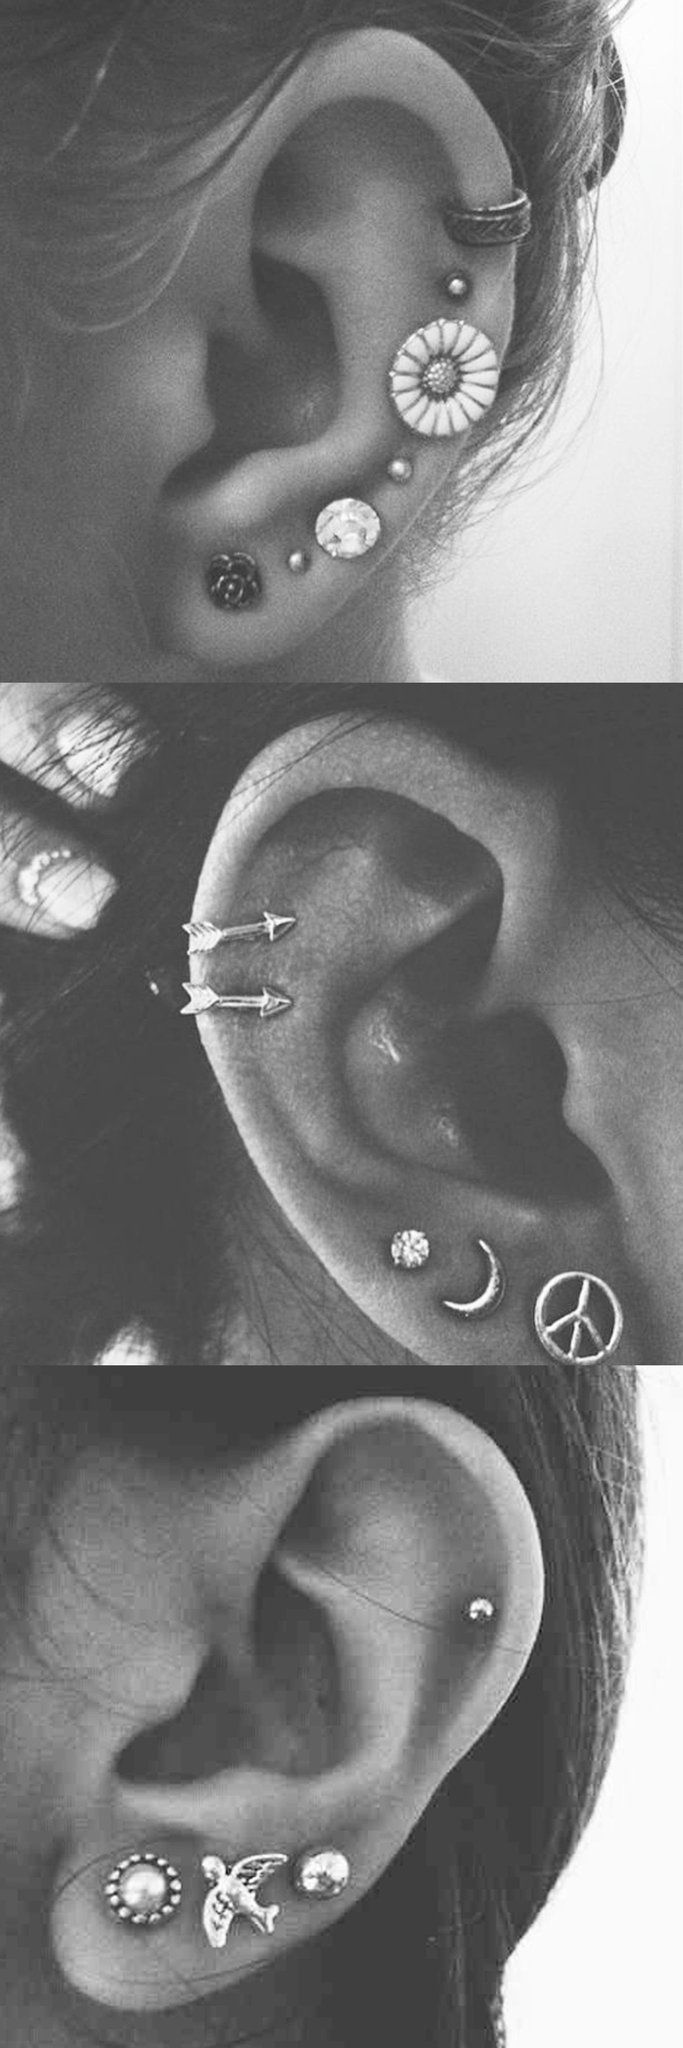 Delicate Multiple Ear Piercing Ideas for Women at MyBodiArt.com - Auricle Pinna Cartilage Helix Ring Hoop Stud Earrings 16G Arrow Sunflower Peace Moon Sun Sparrow Bird